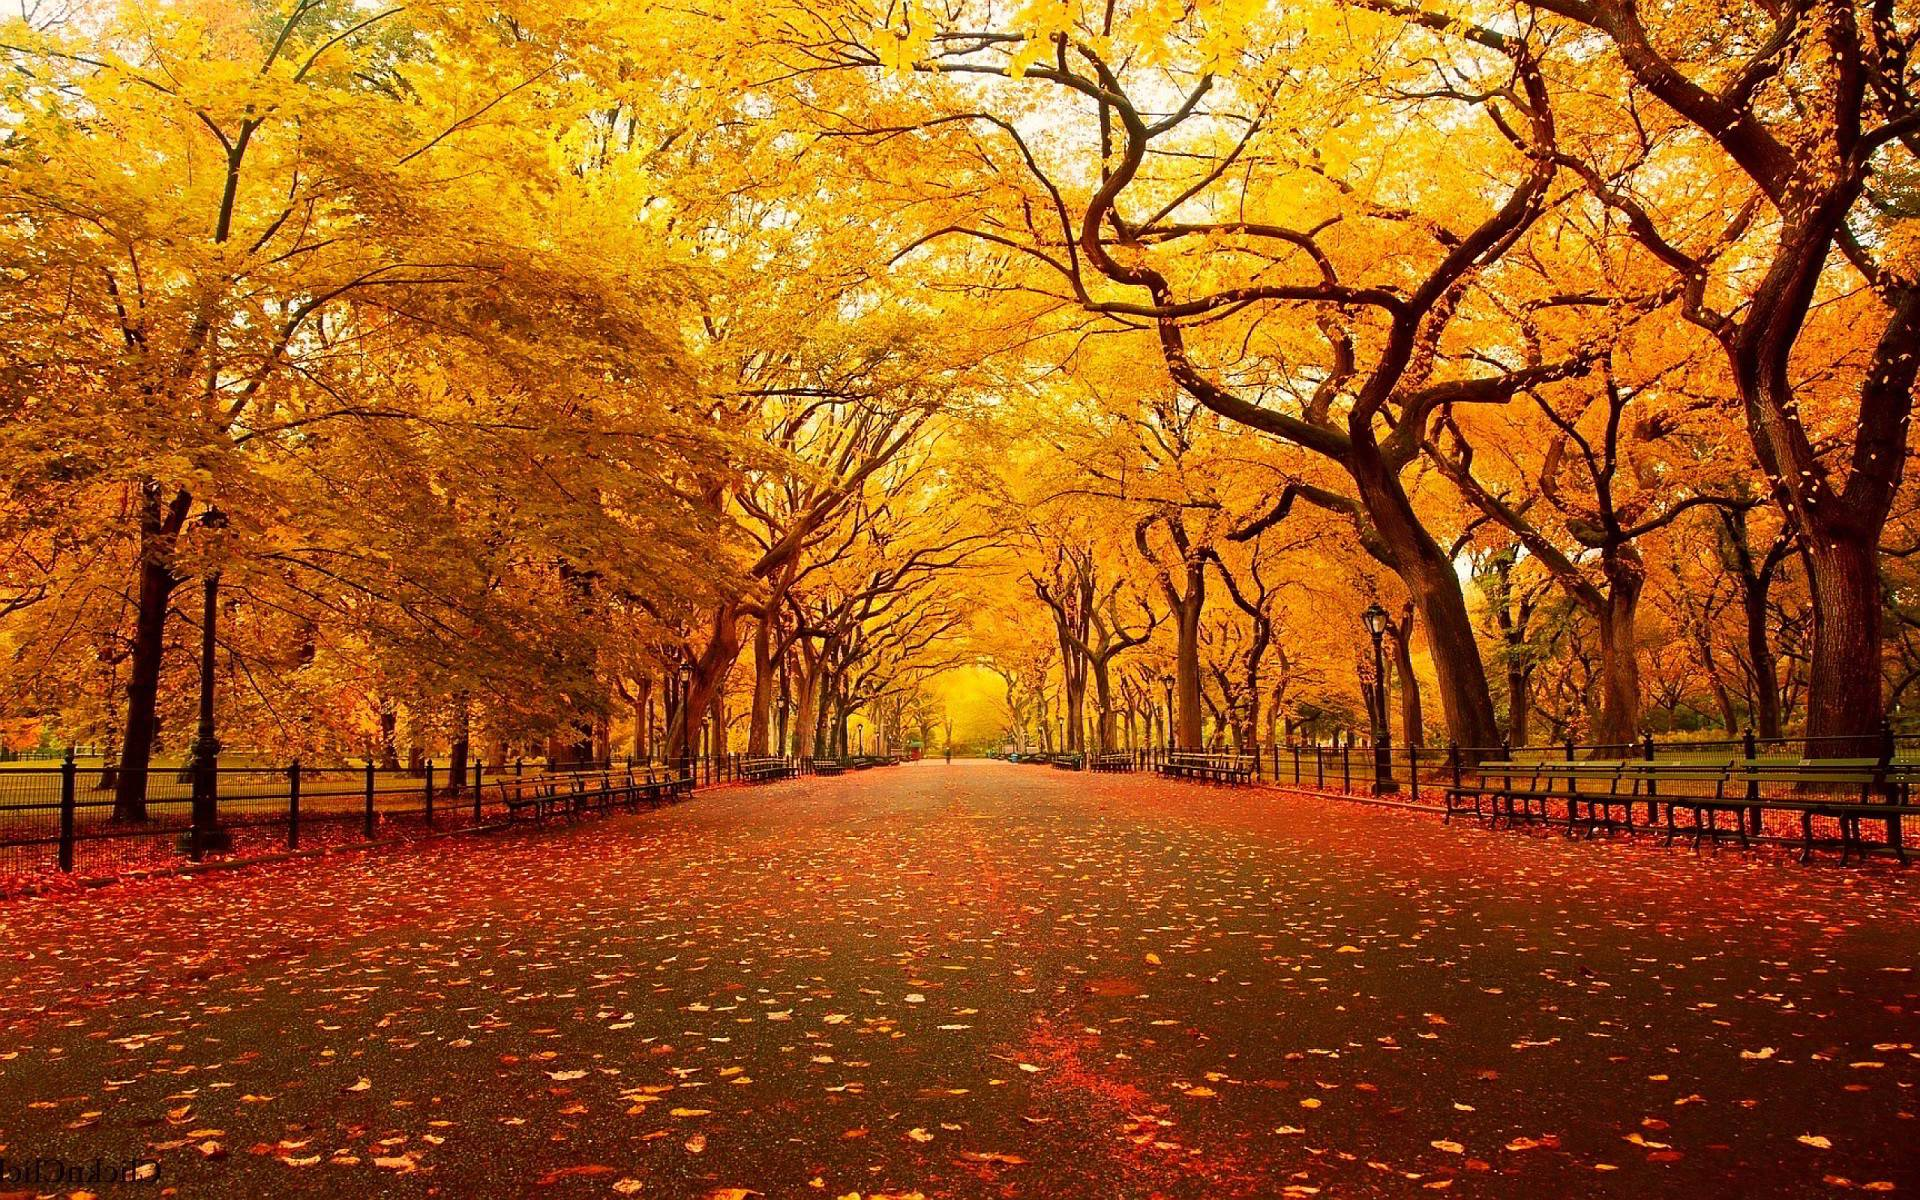 Wallpapers HD Cool Backgrounds Autumn, Wallpapers, HD Wallpapers